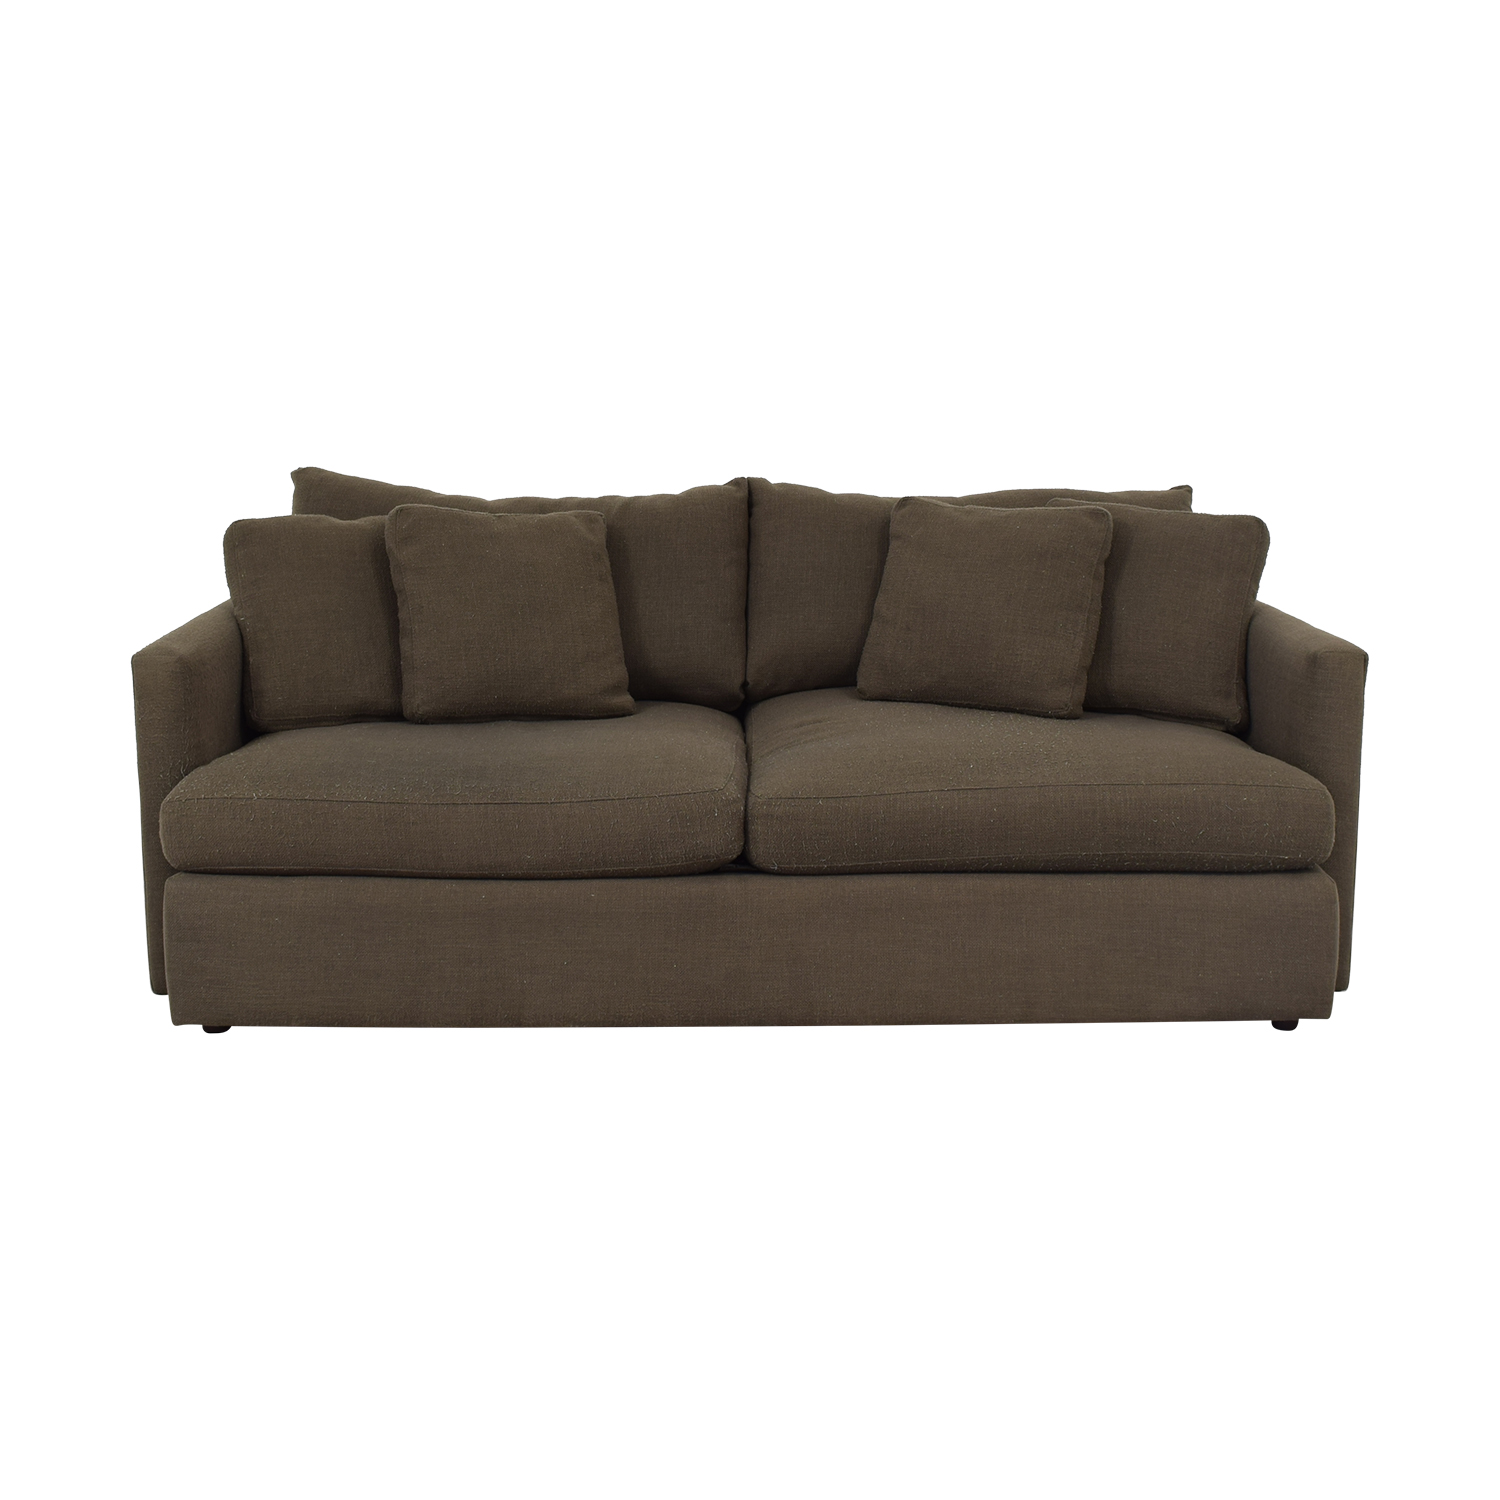 Crate & Barrel Crate & Barrel Lounge II Sofa price